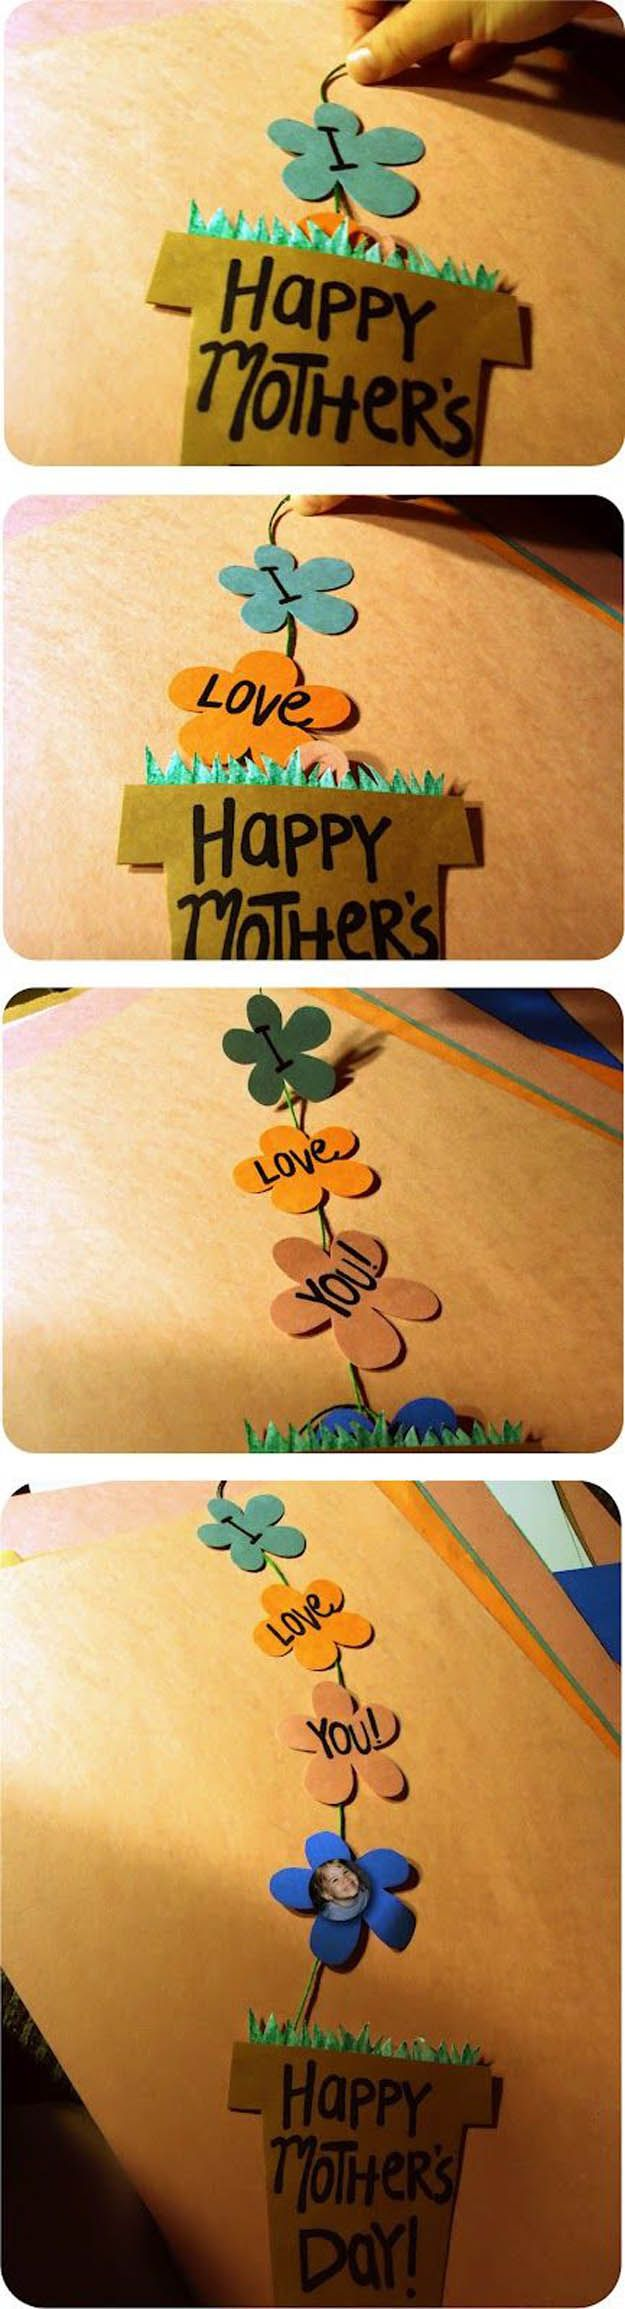 Easy DIY Cards | Mother's Day Crafts